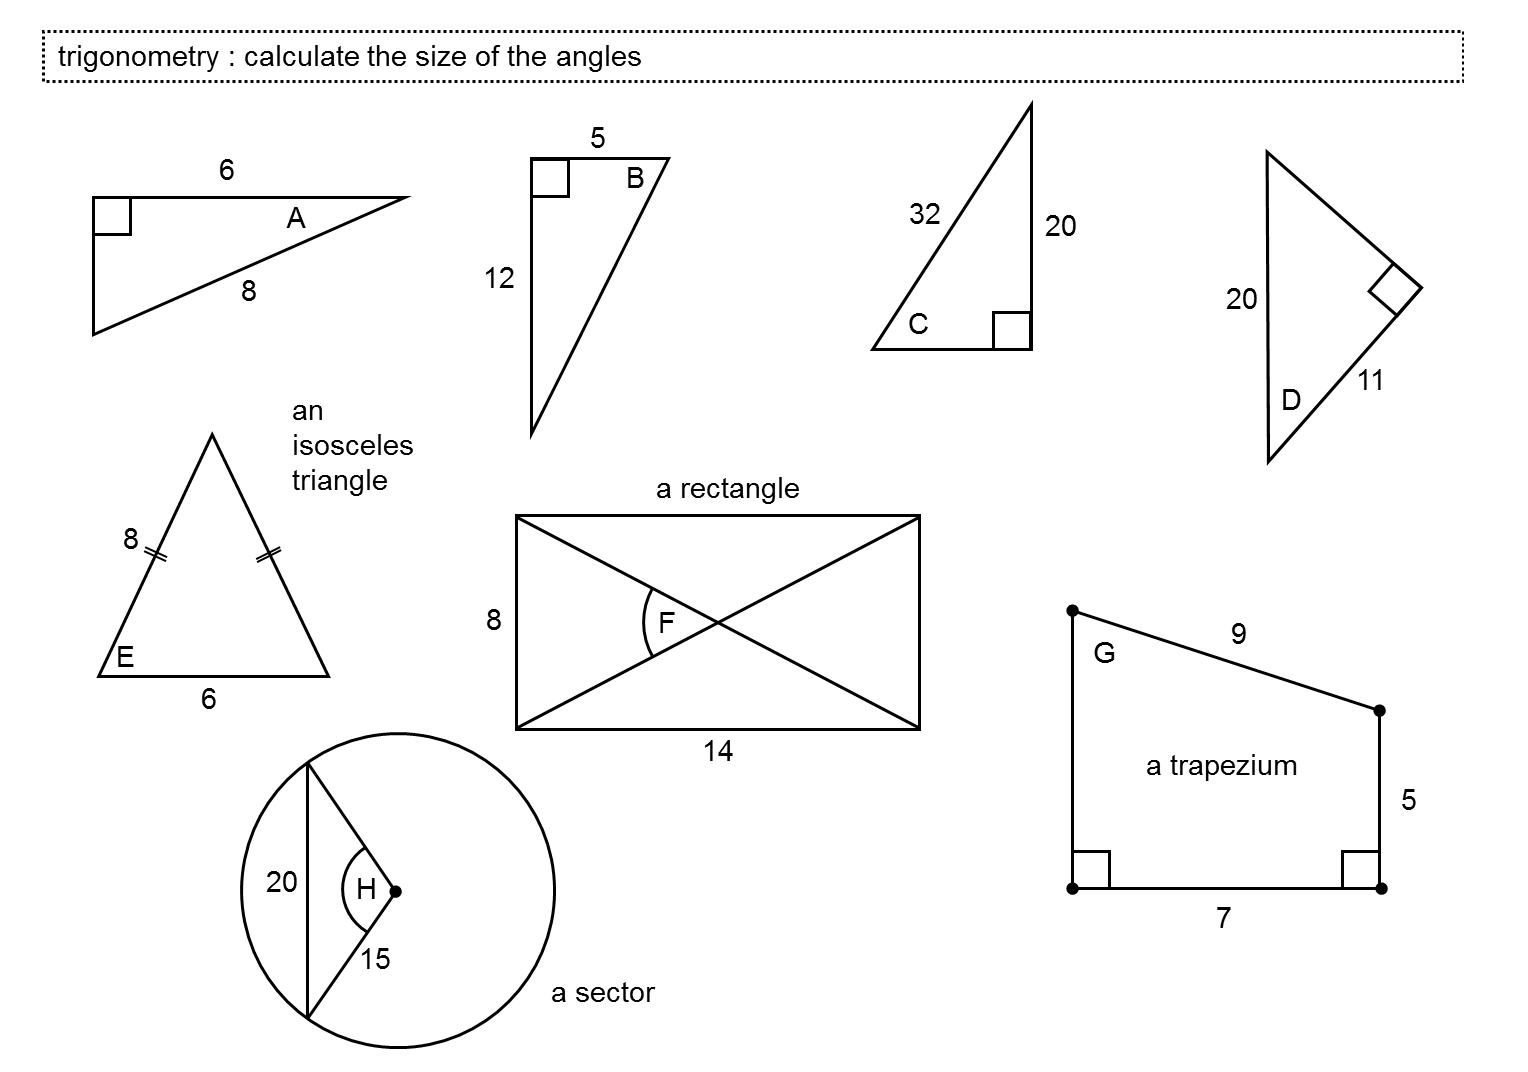 Uncategorized Maths Gcse Worksheets trigonometry in right angled triangles miss norledges storeroom calculate angle size don steward